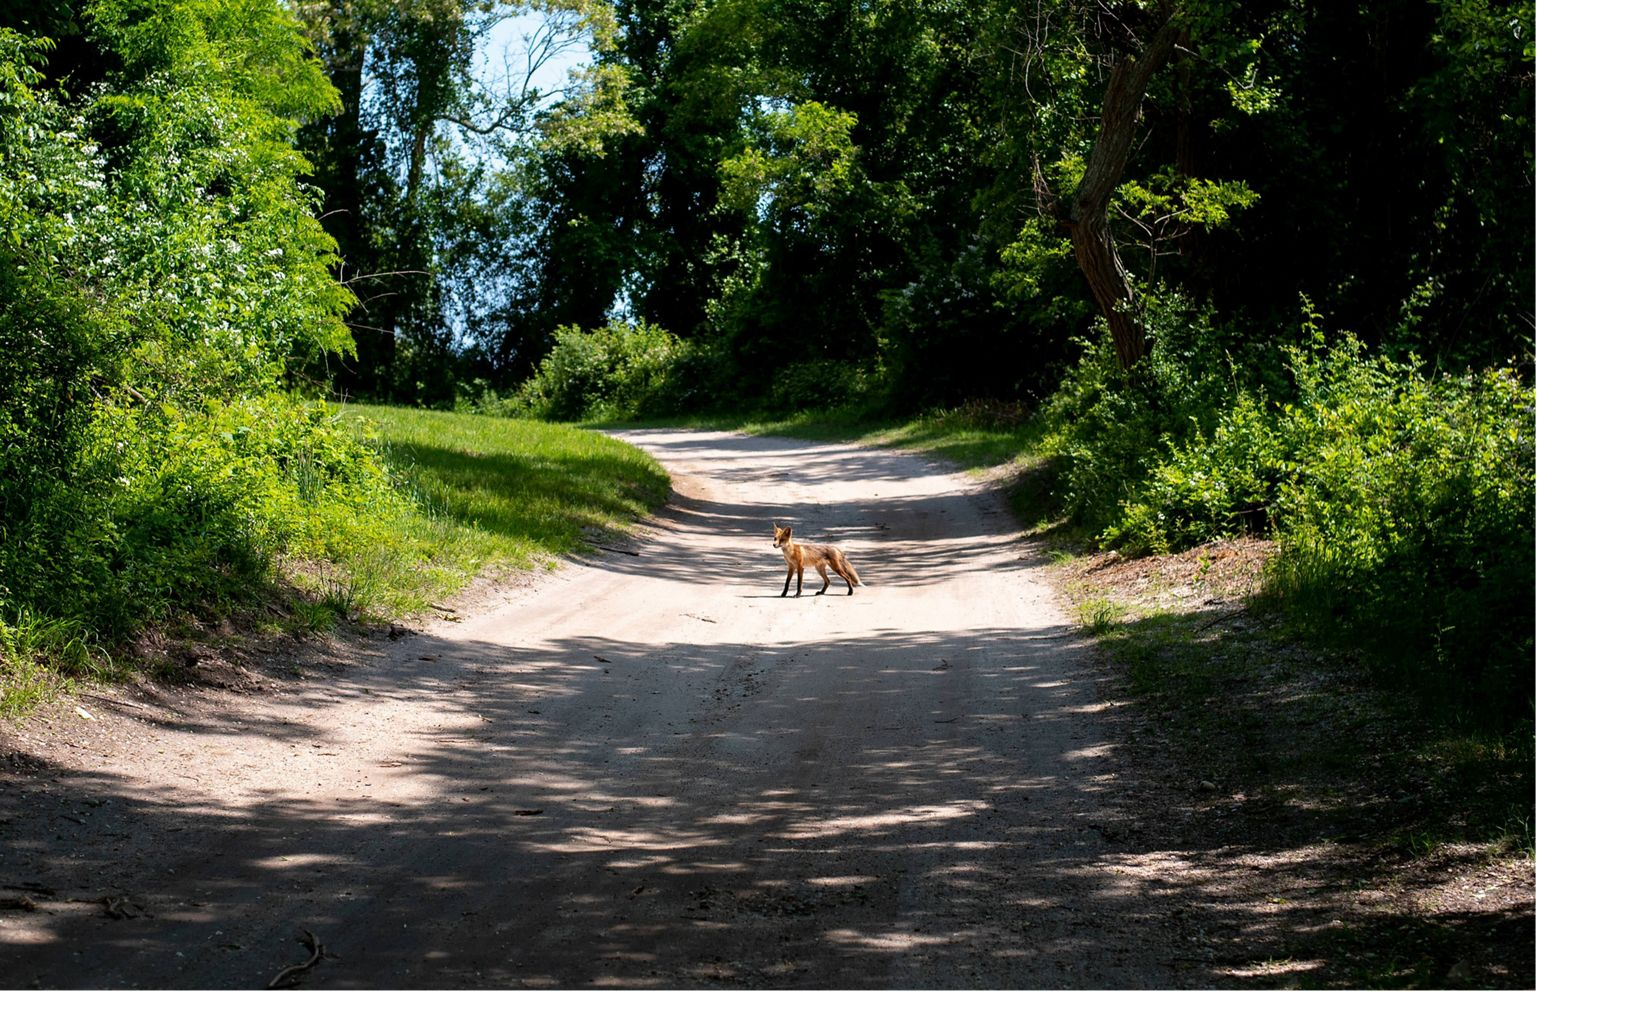 Young fox explores the path